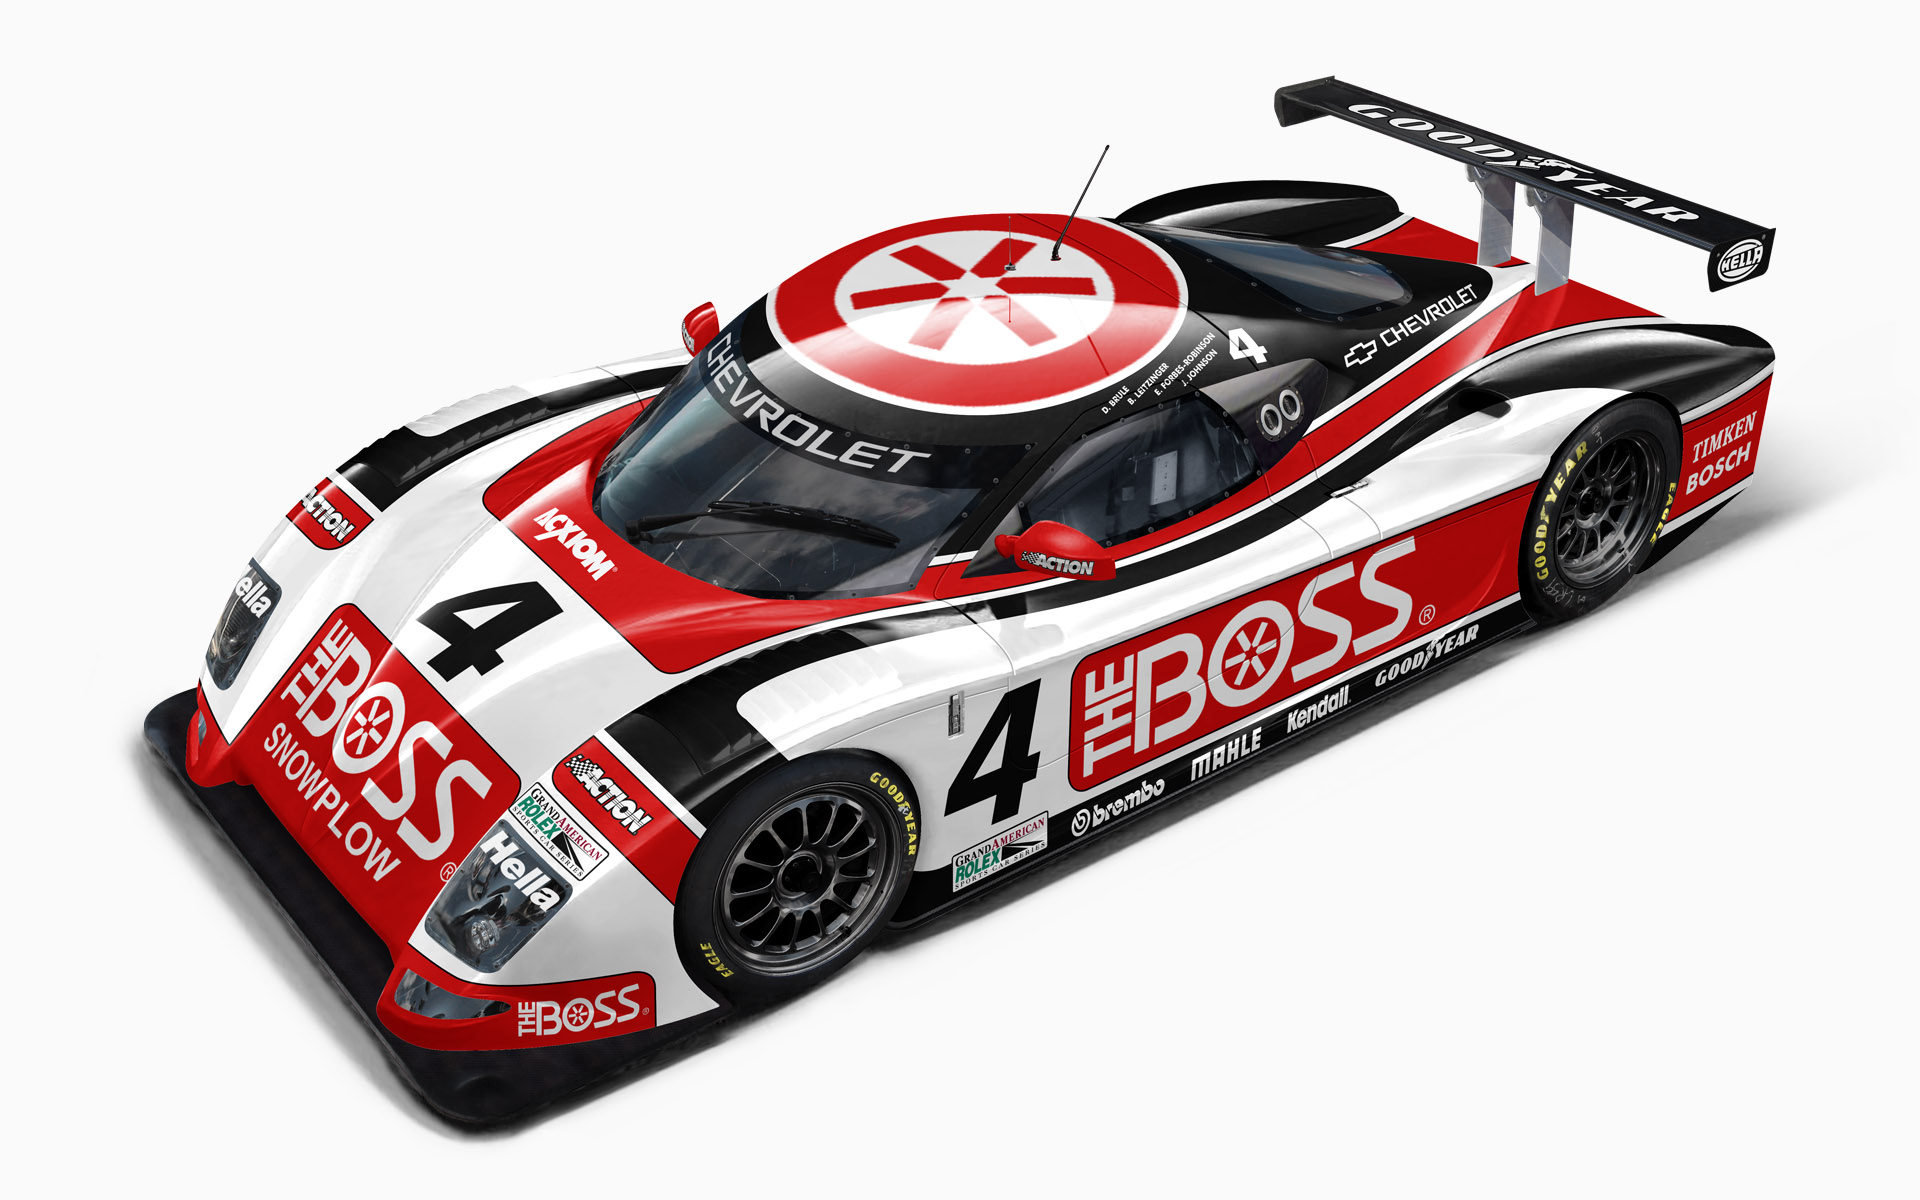 Howard Boss Motorsports Boss Snowplow Chevy Crawford Daytona Prototype Livery Visualization